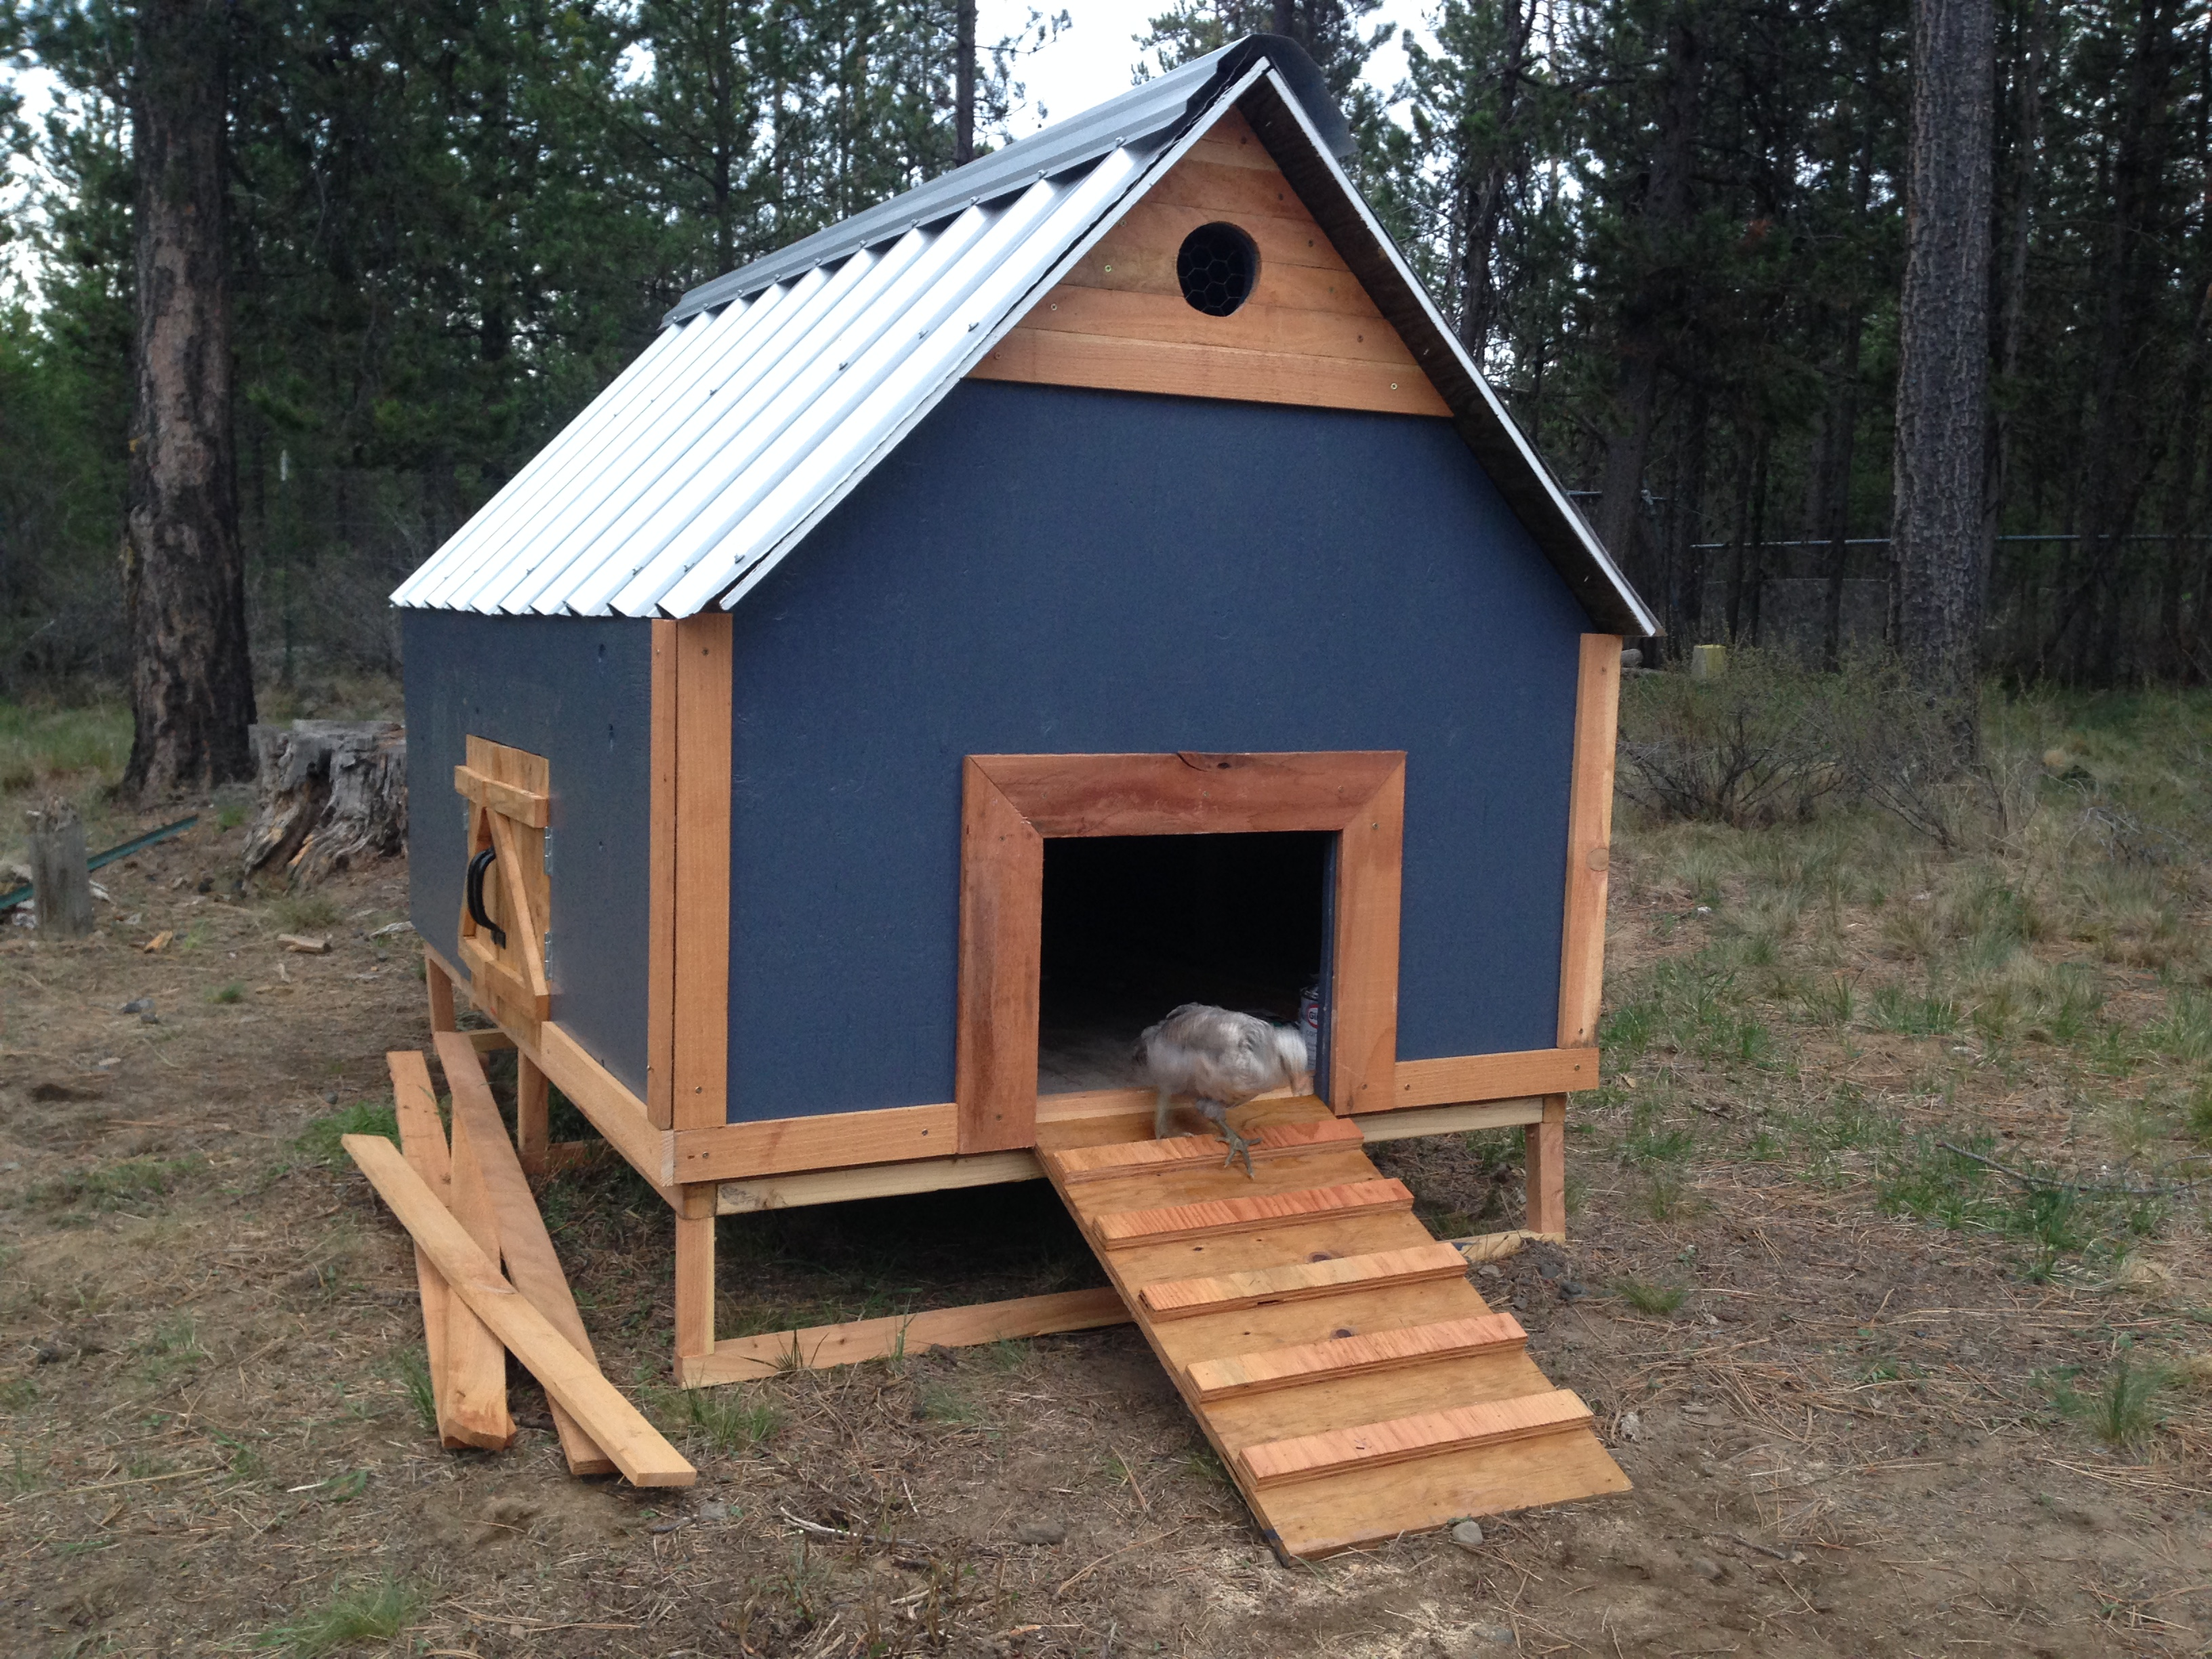 New Chicken Coop made from Pine and Metal roofing.